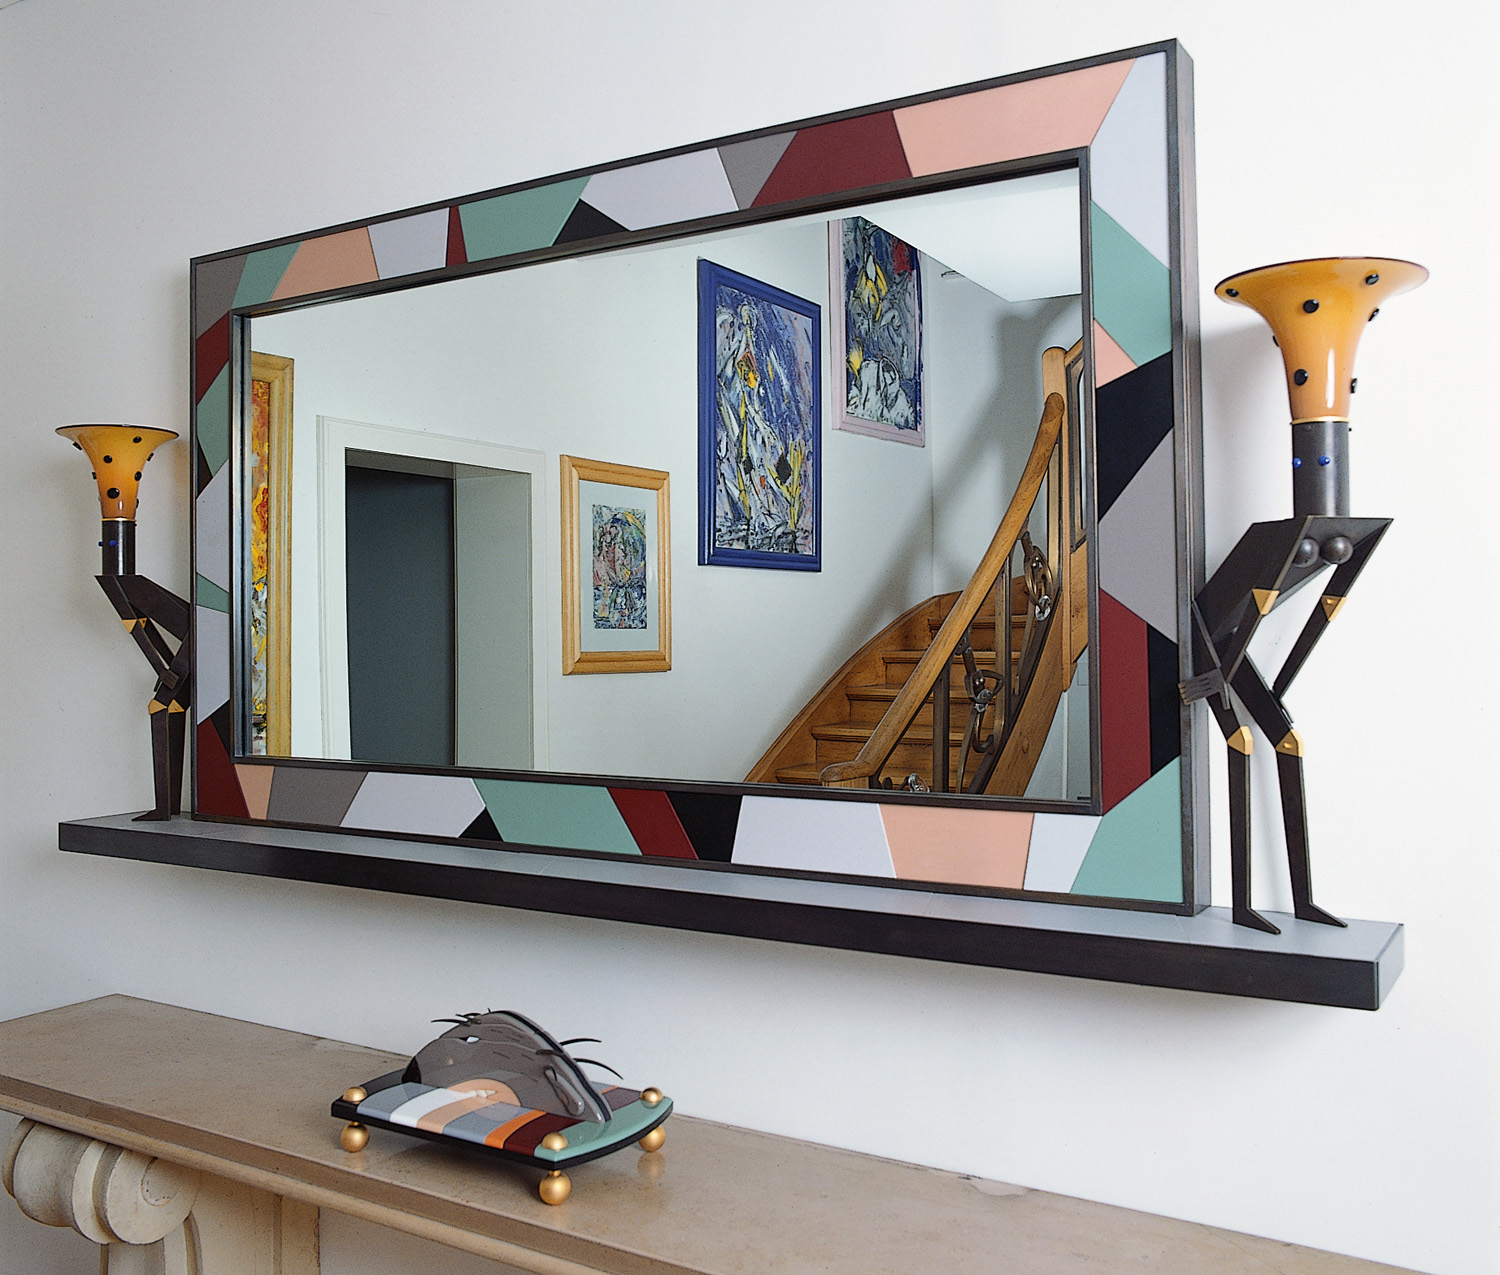 """Mirror and Shelf with Two Nude Lamps   (above)1993.Vitrolite and blown glass,steel, gold plated and patinated bronze. 40 x 84 x 11½""""     Sloth   (below)1990. Vitrolite and plate glass,nickel and gold plated brass, anodized aluminum. 12 x 215 x 10"""" Private residence, Zurich, Switzerland."""